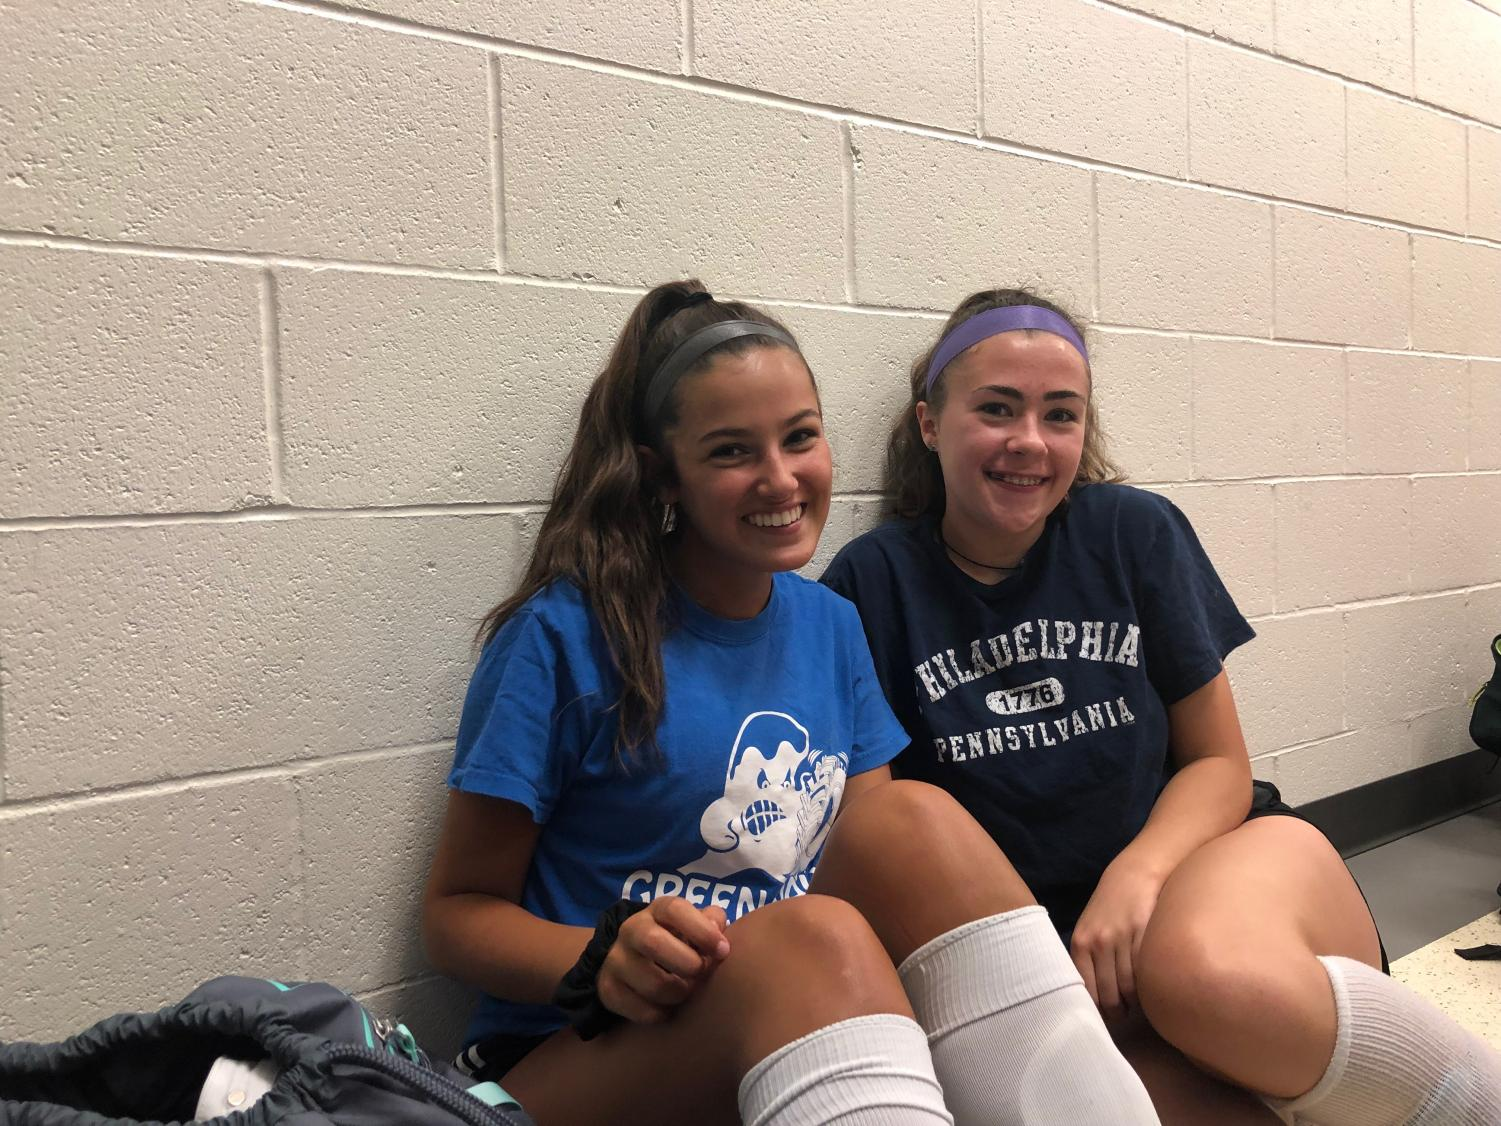 Juniors+Lyla+Blanchard+%28left%29+and+Lily+Bonner+getting+ready+for+their+first+after-school+soccer+practice+on+August+28%2C+2019+at+Abington+High